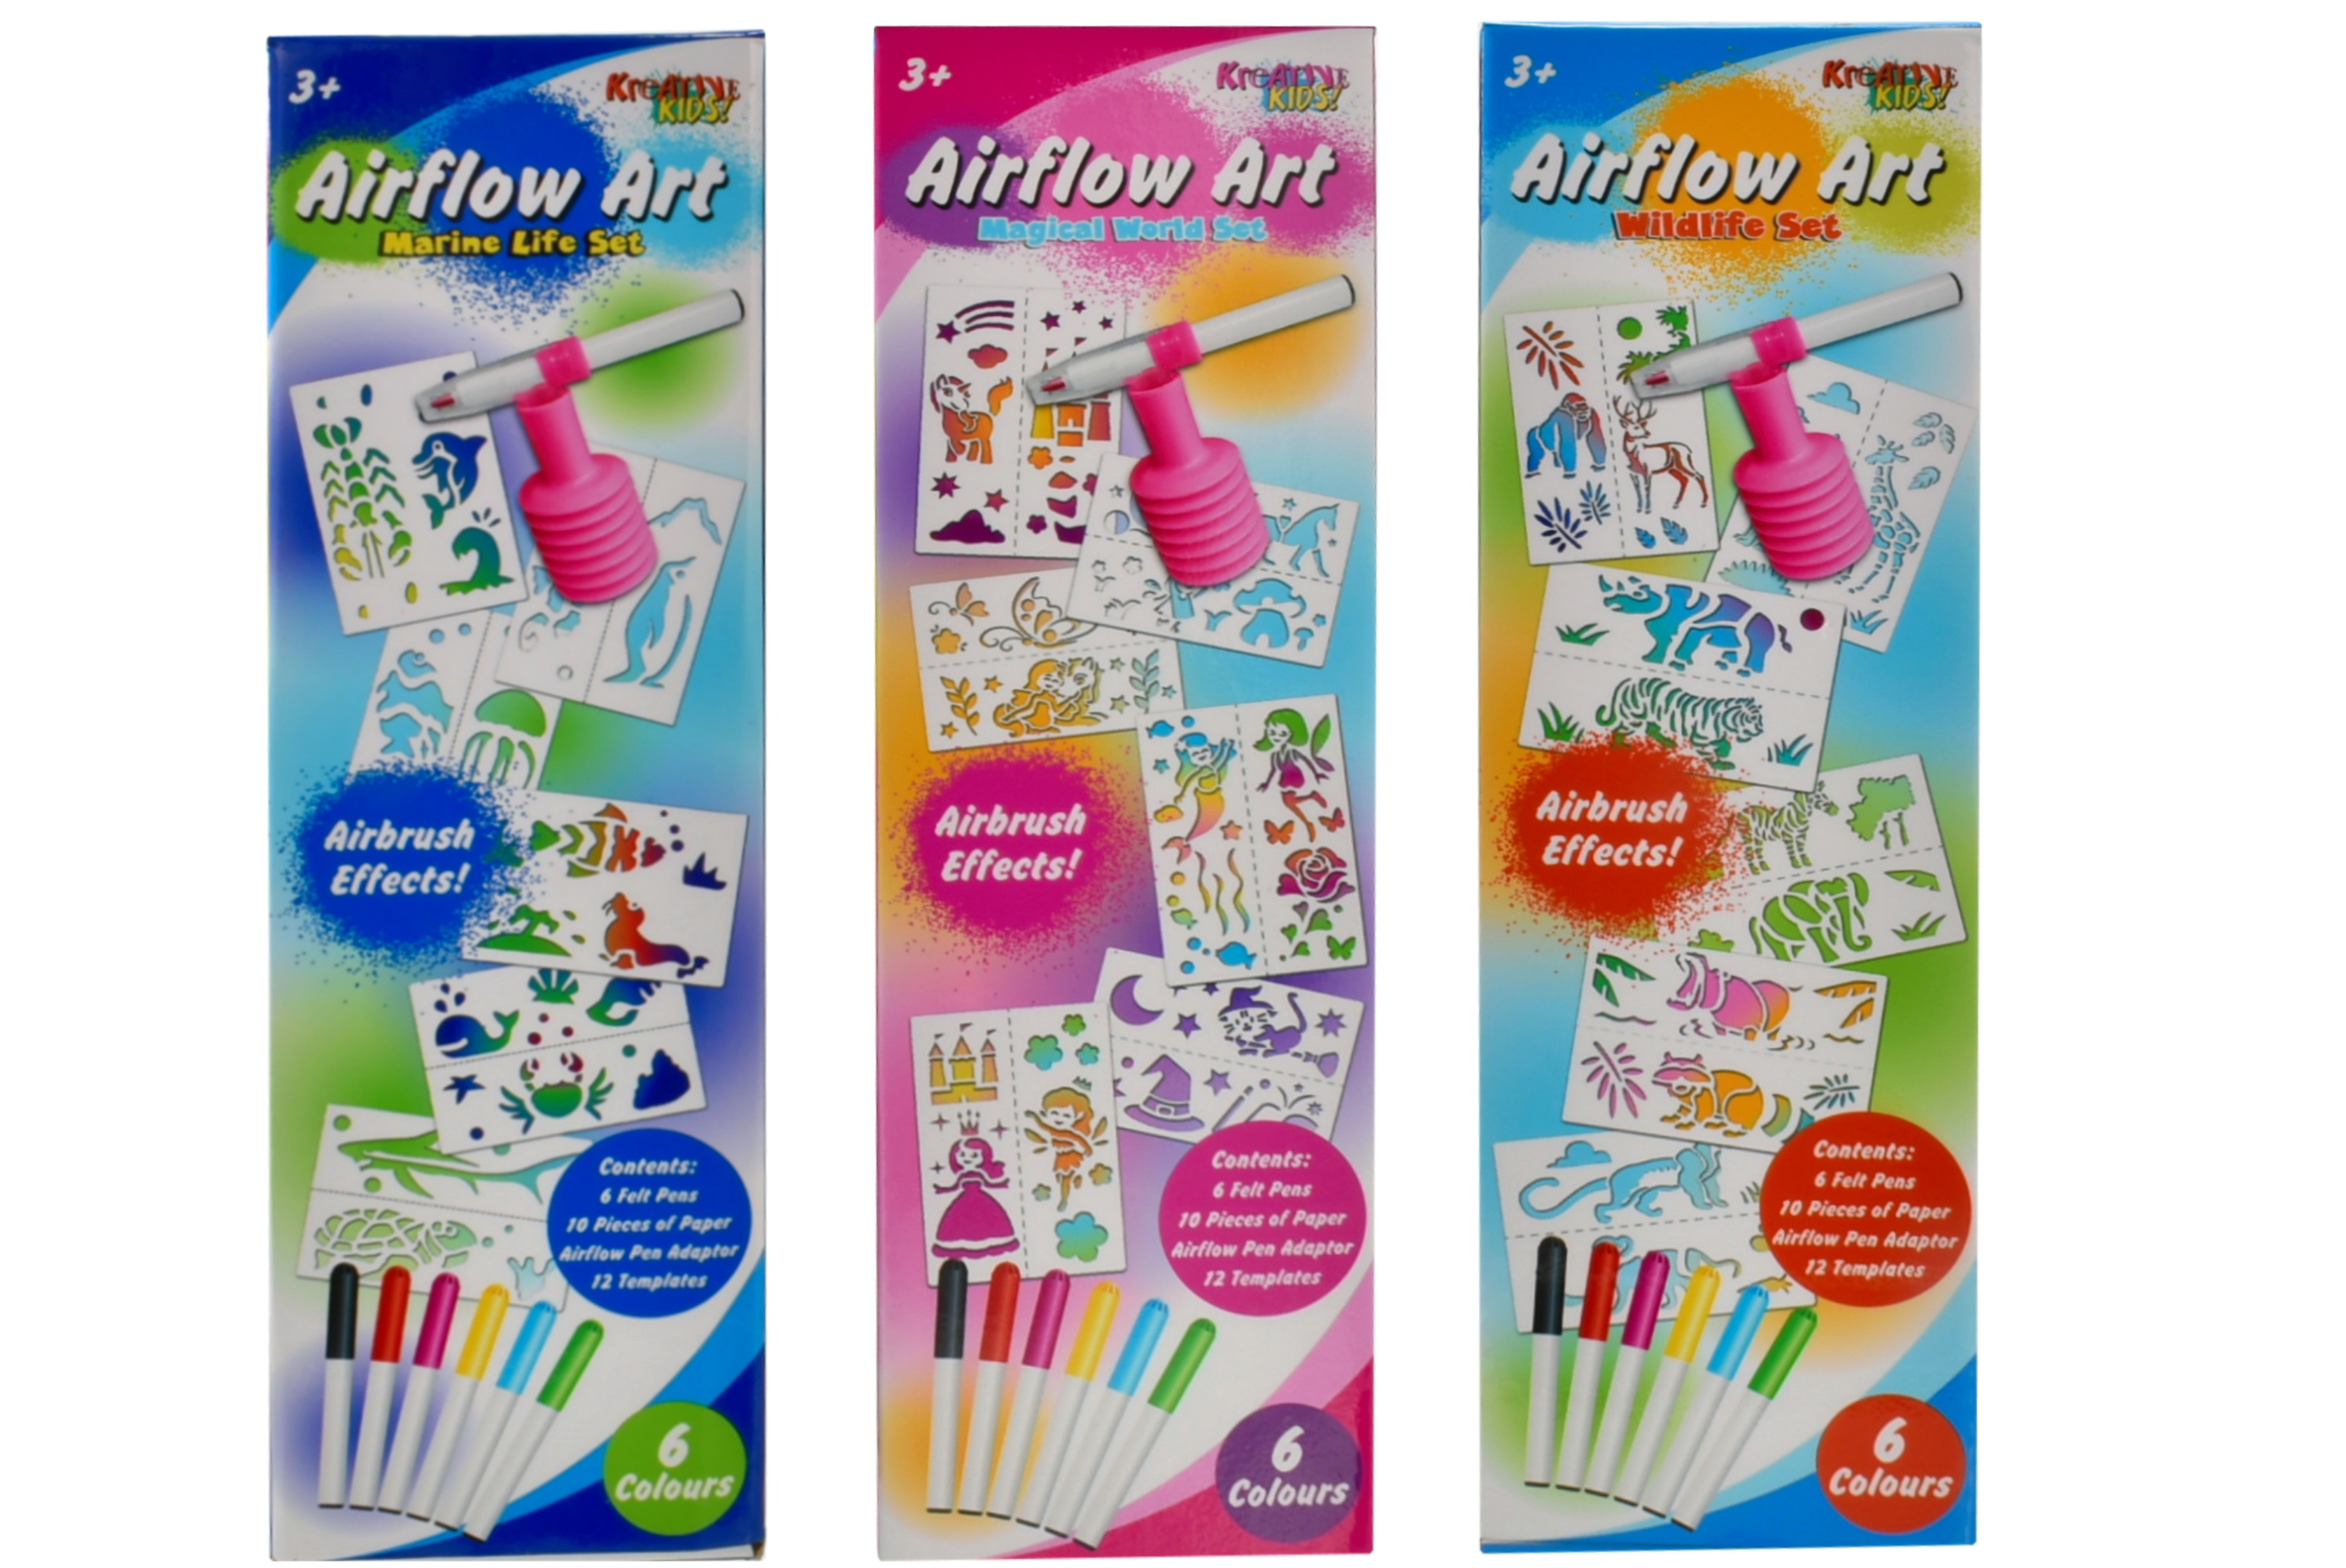 3 Assorted Air Flow Pen Playsets In Colour Box